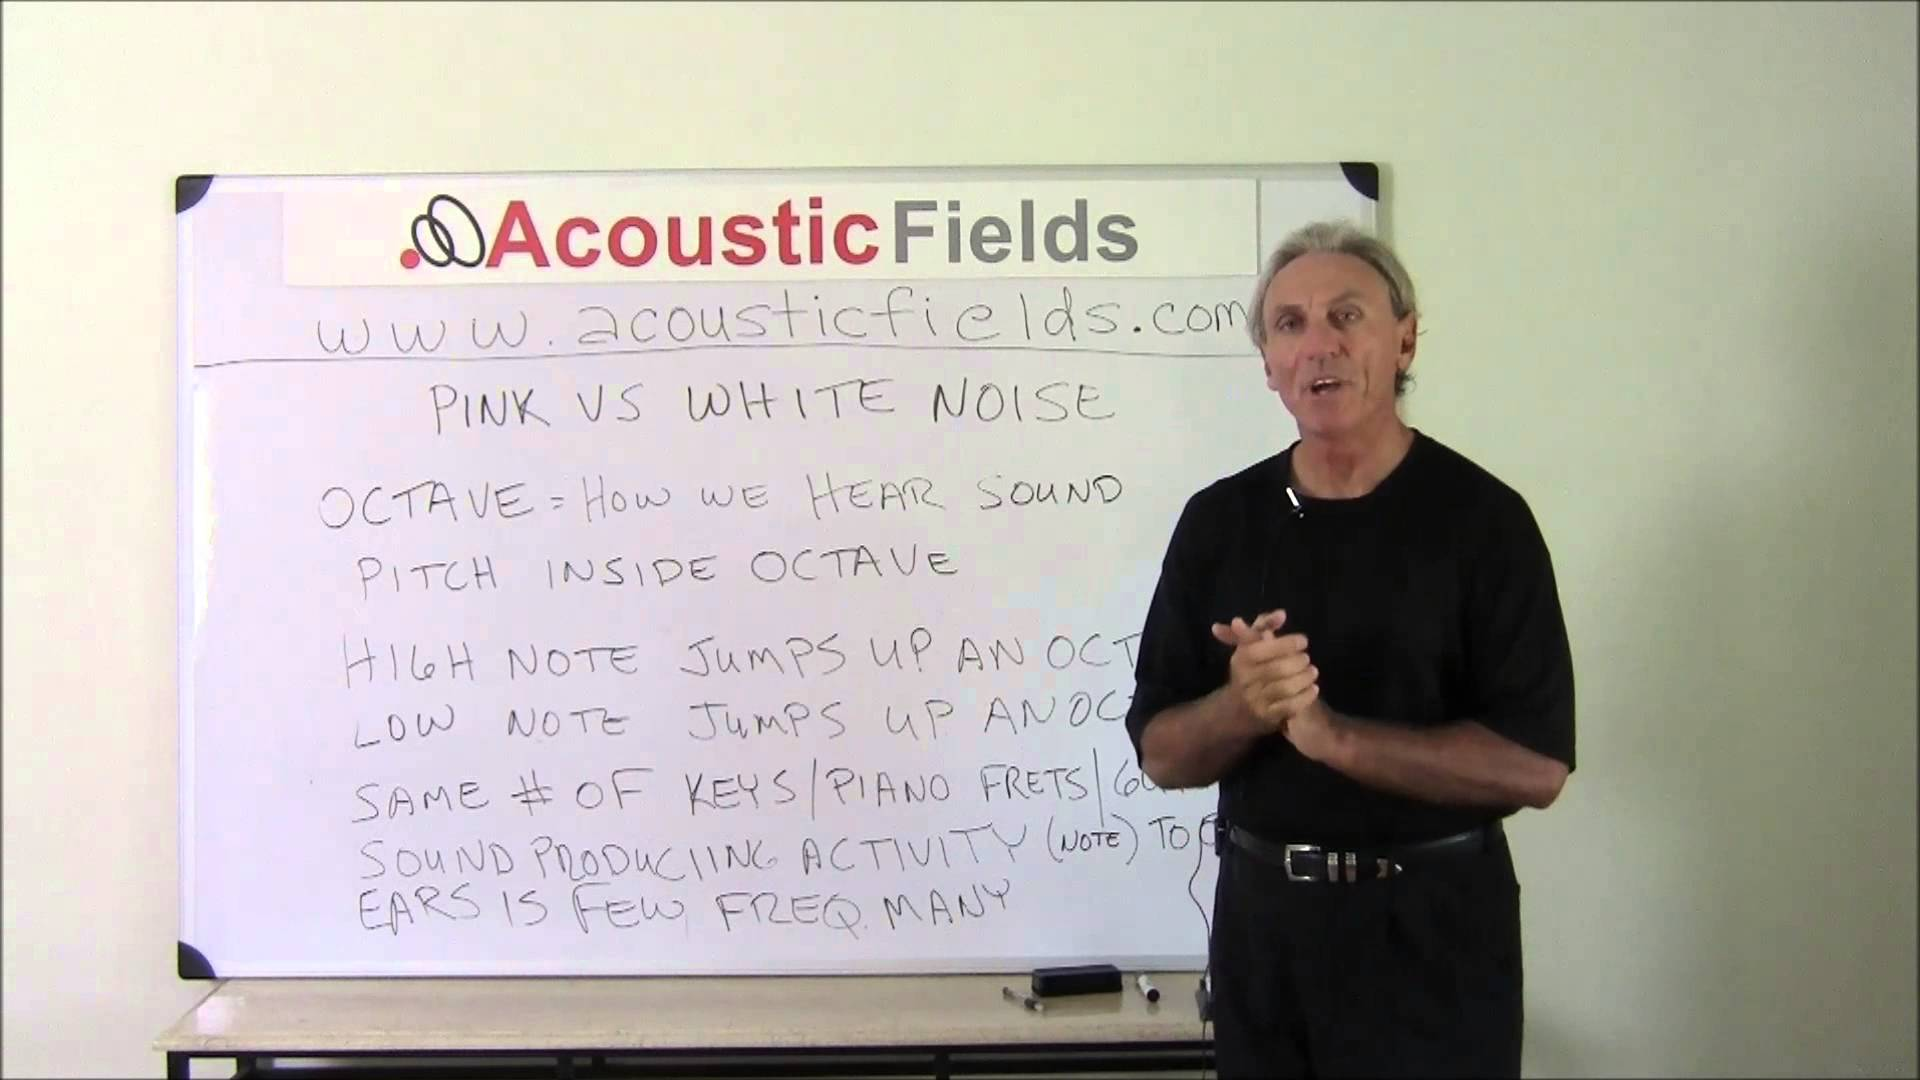 White Noise Definition Vs. Pink Noise